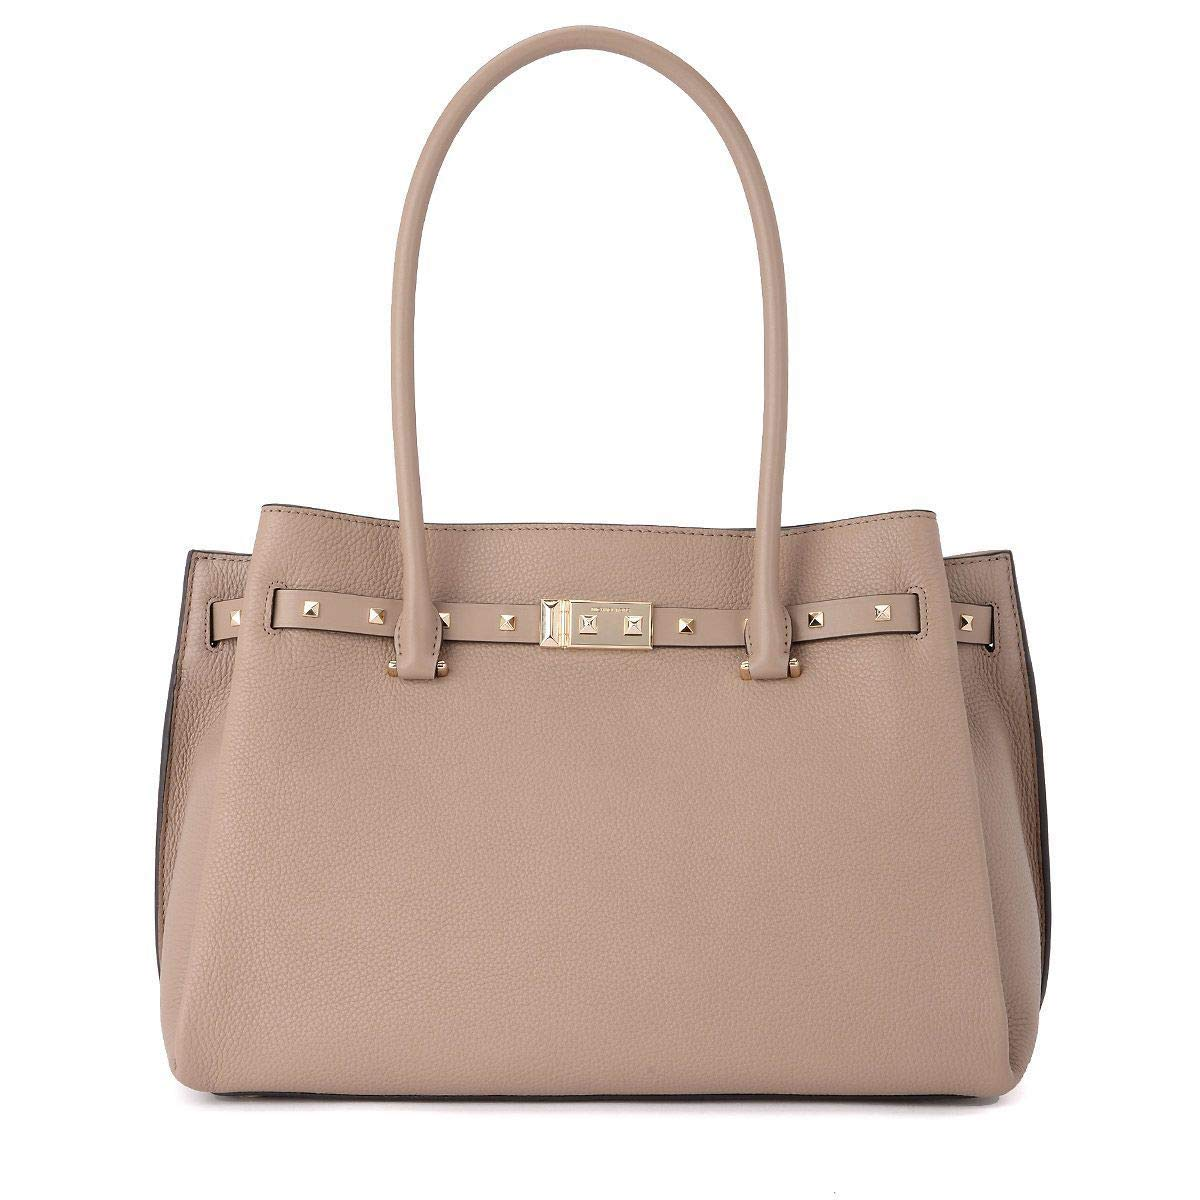 21fe83fb6fd4dd Amazon.com: Michael Kors Addison Large Pebbled Leather Tote - Fawn: Shoes